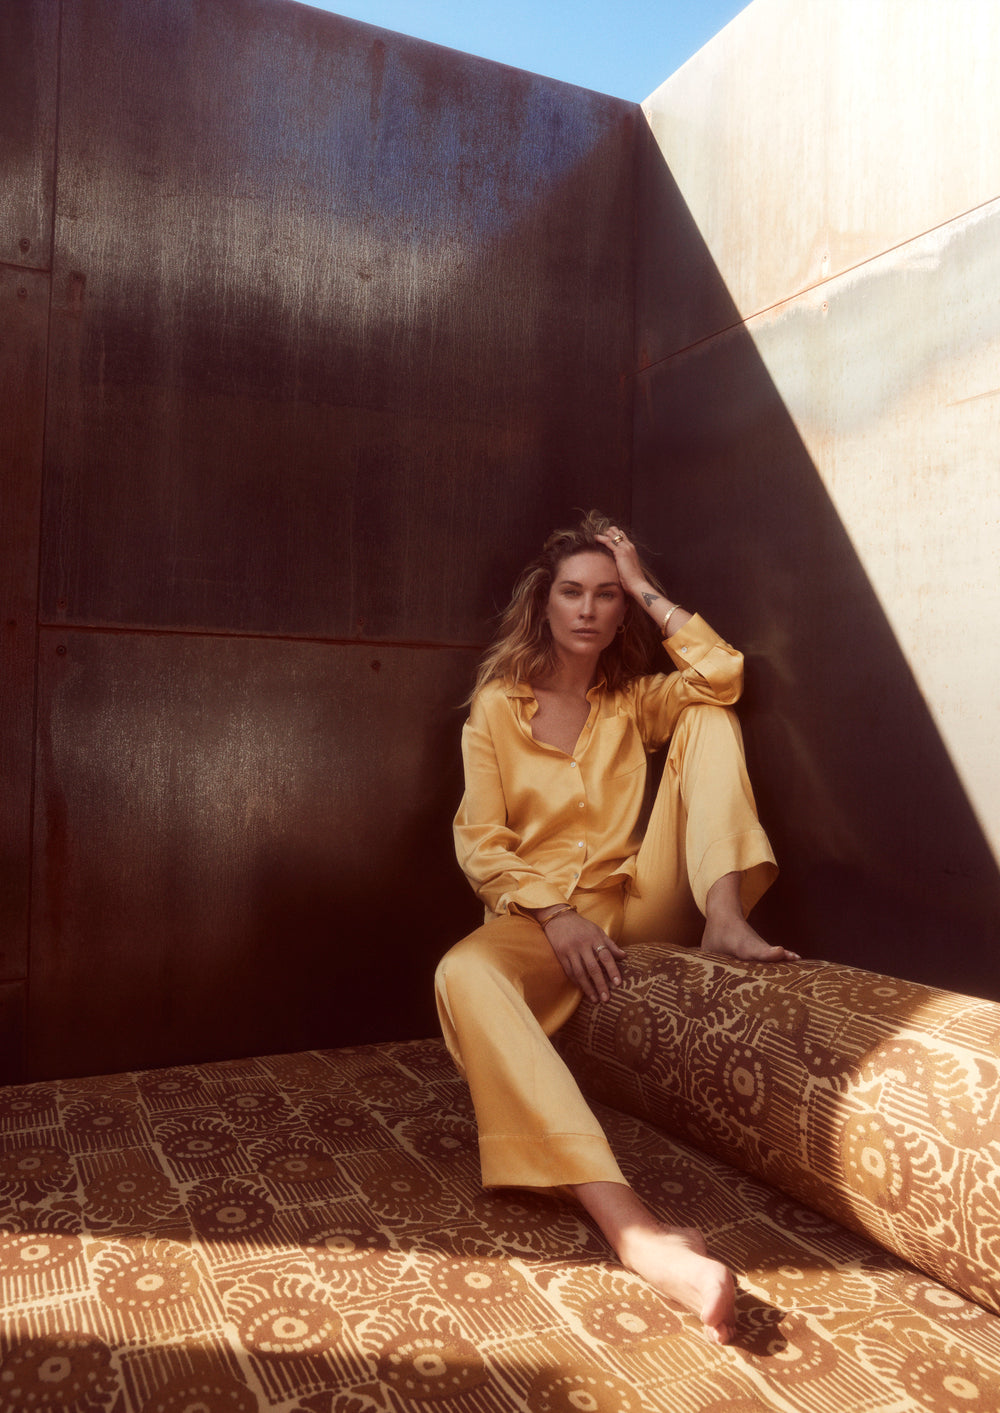 Discover the new collection from Asceno London, featuring Erin Wasson. The collection consists of perfectly proportioned luxury loungewear essentials - Asceno London